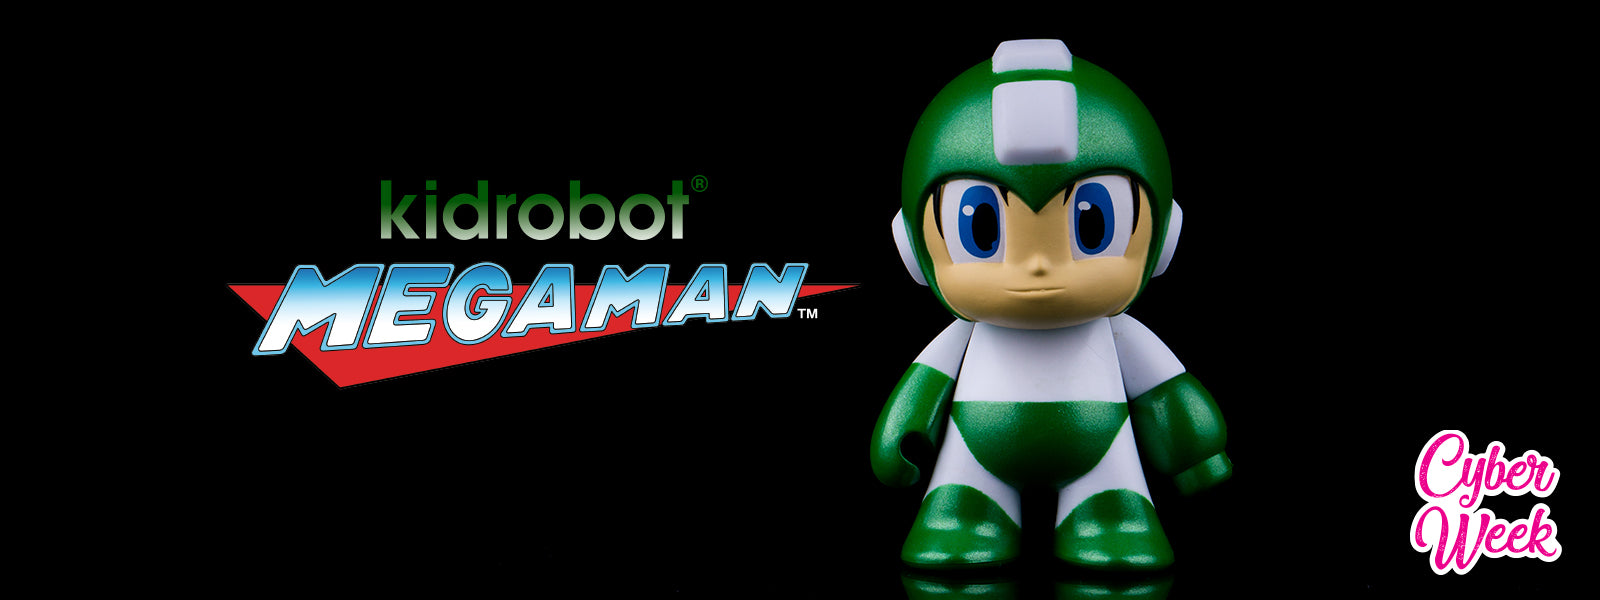 Mega Man x Kidrobot Gifts, Art Figures and Art Toys by Kidrobot